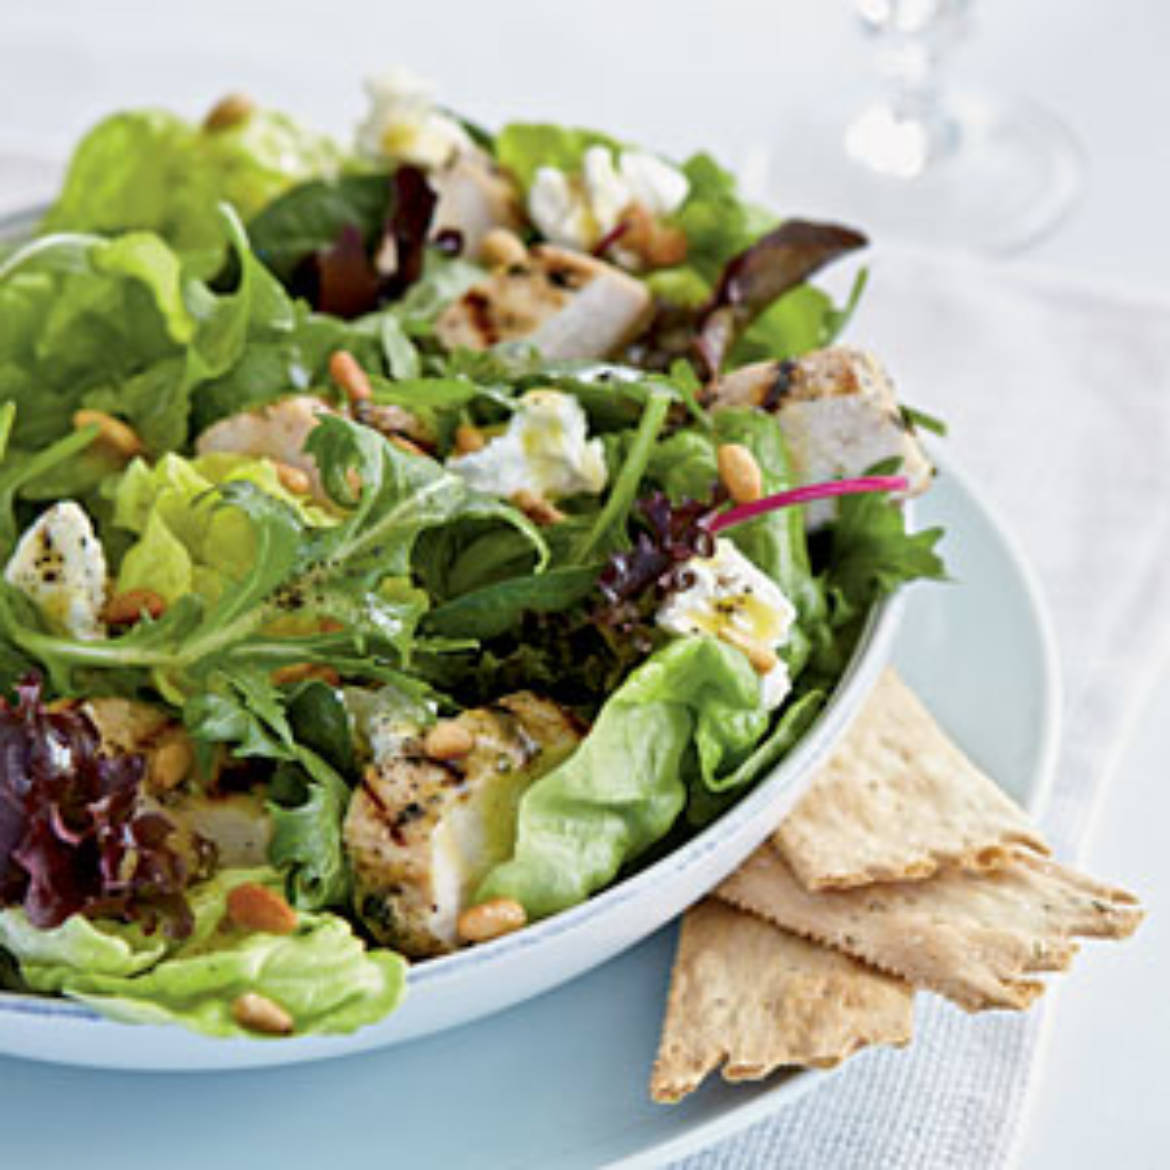 lemon-chicken-salad-cl-l1.jpg